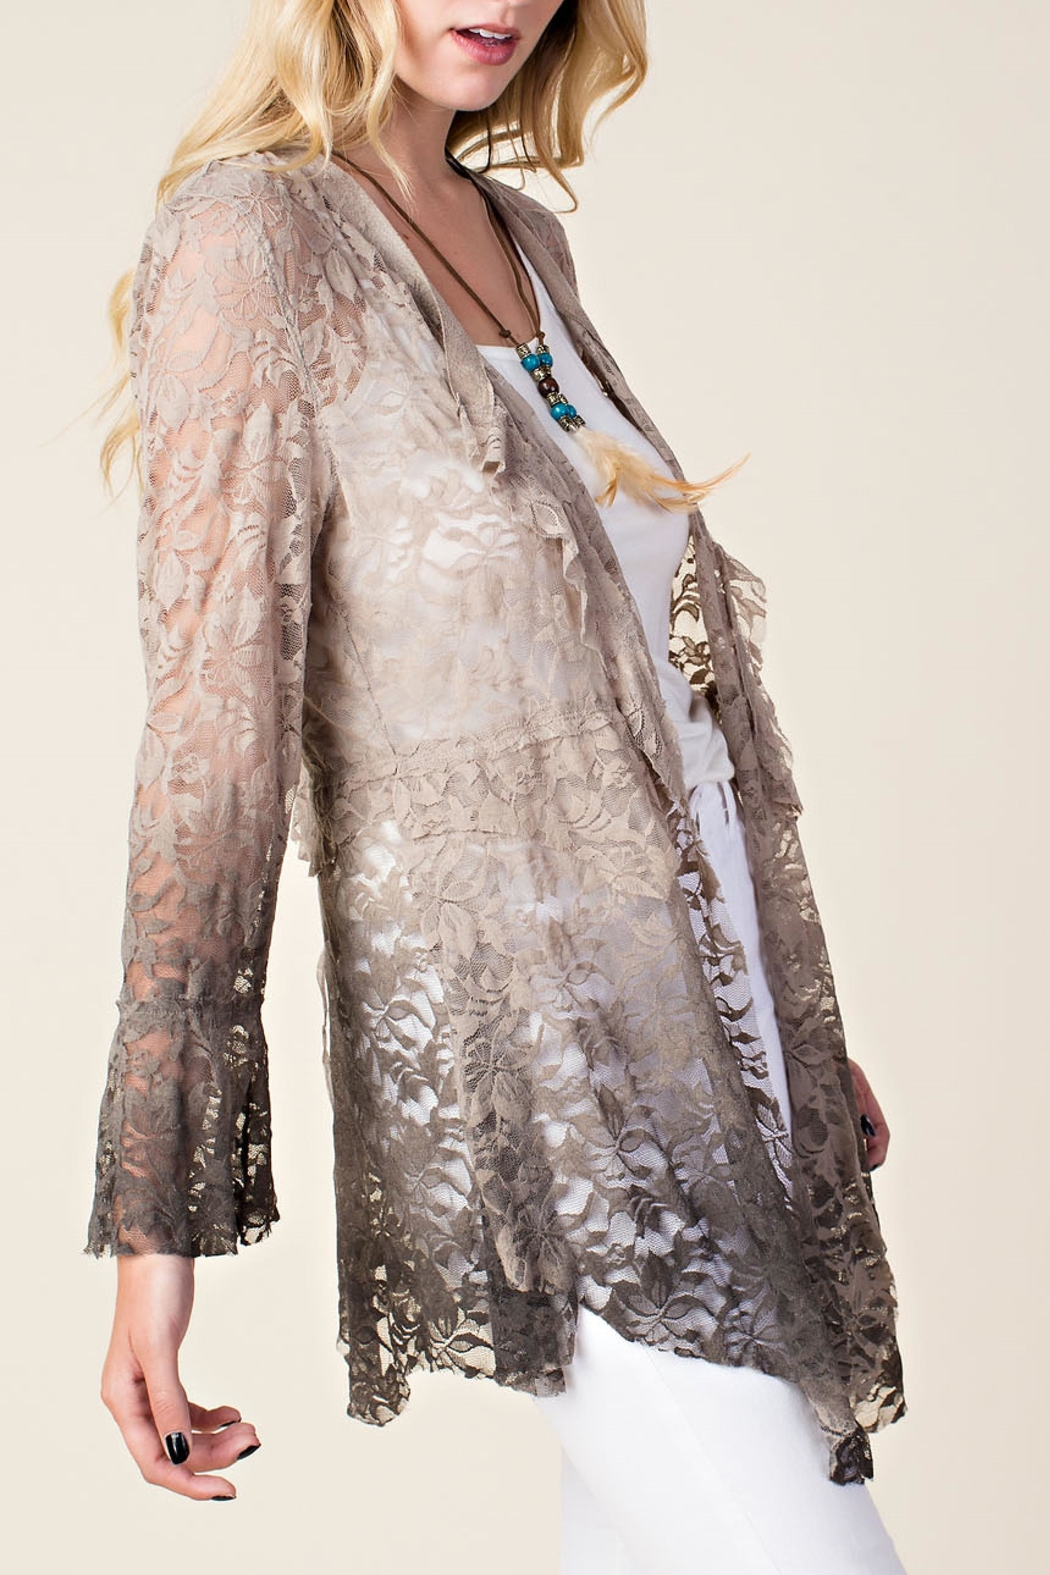 Vocal Apparel Ombre Lace Cardigan - Side Cropped Image